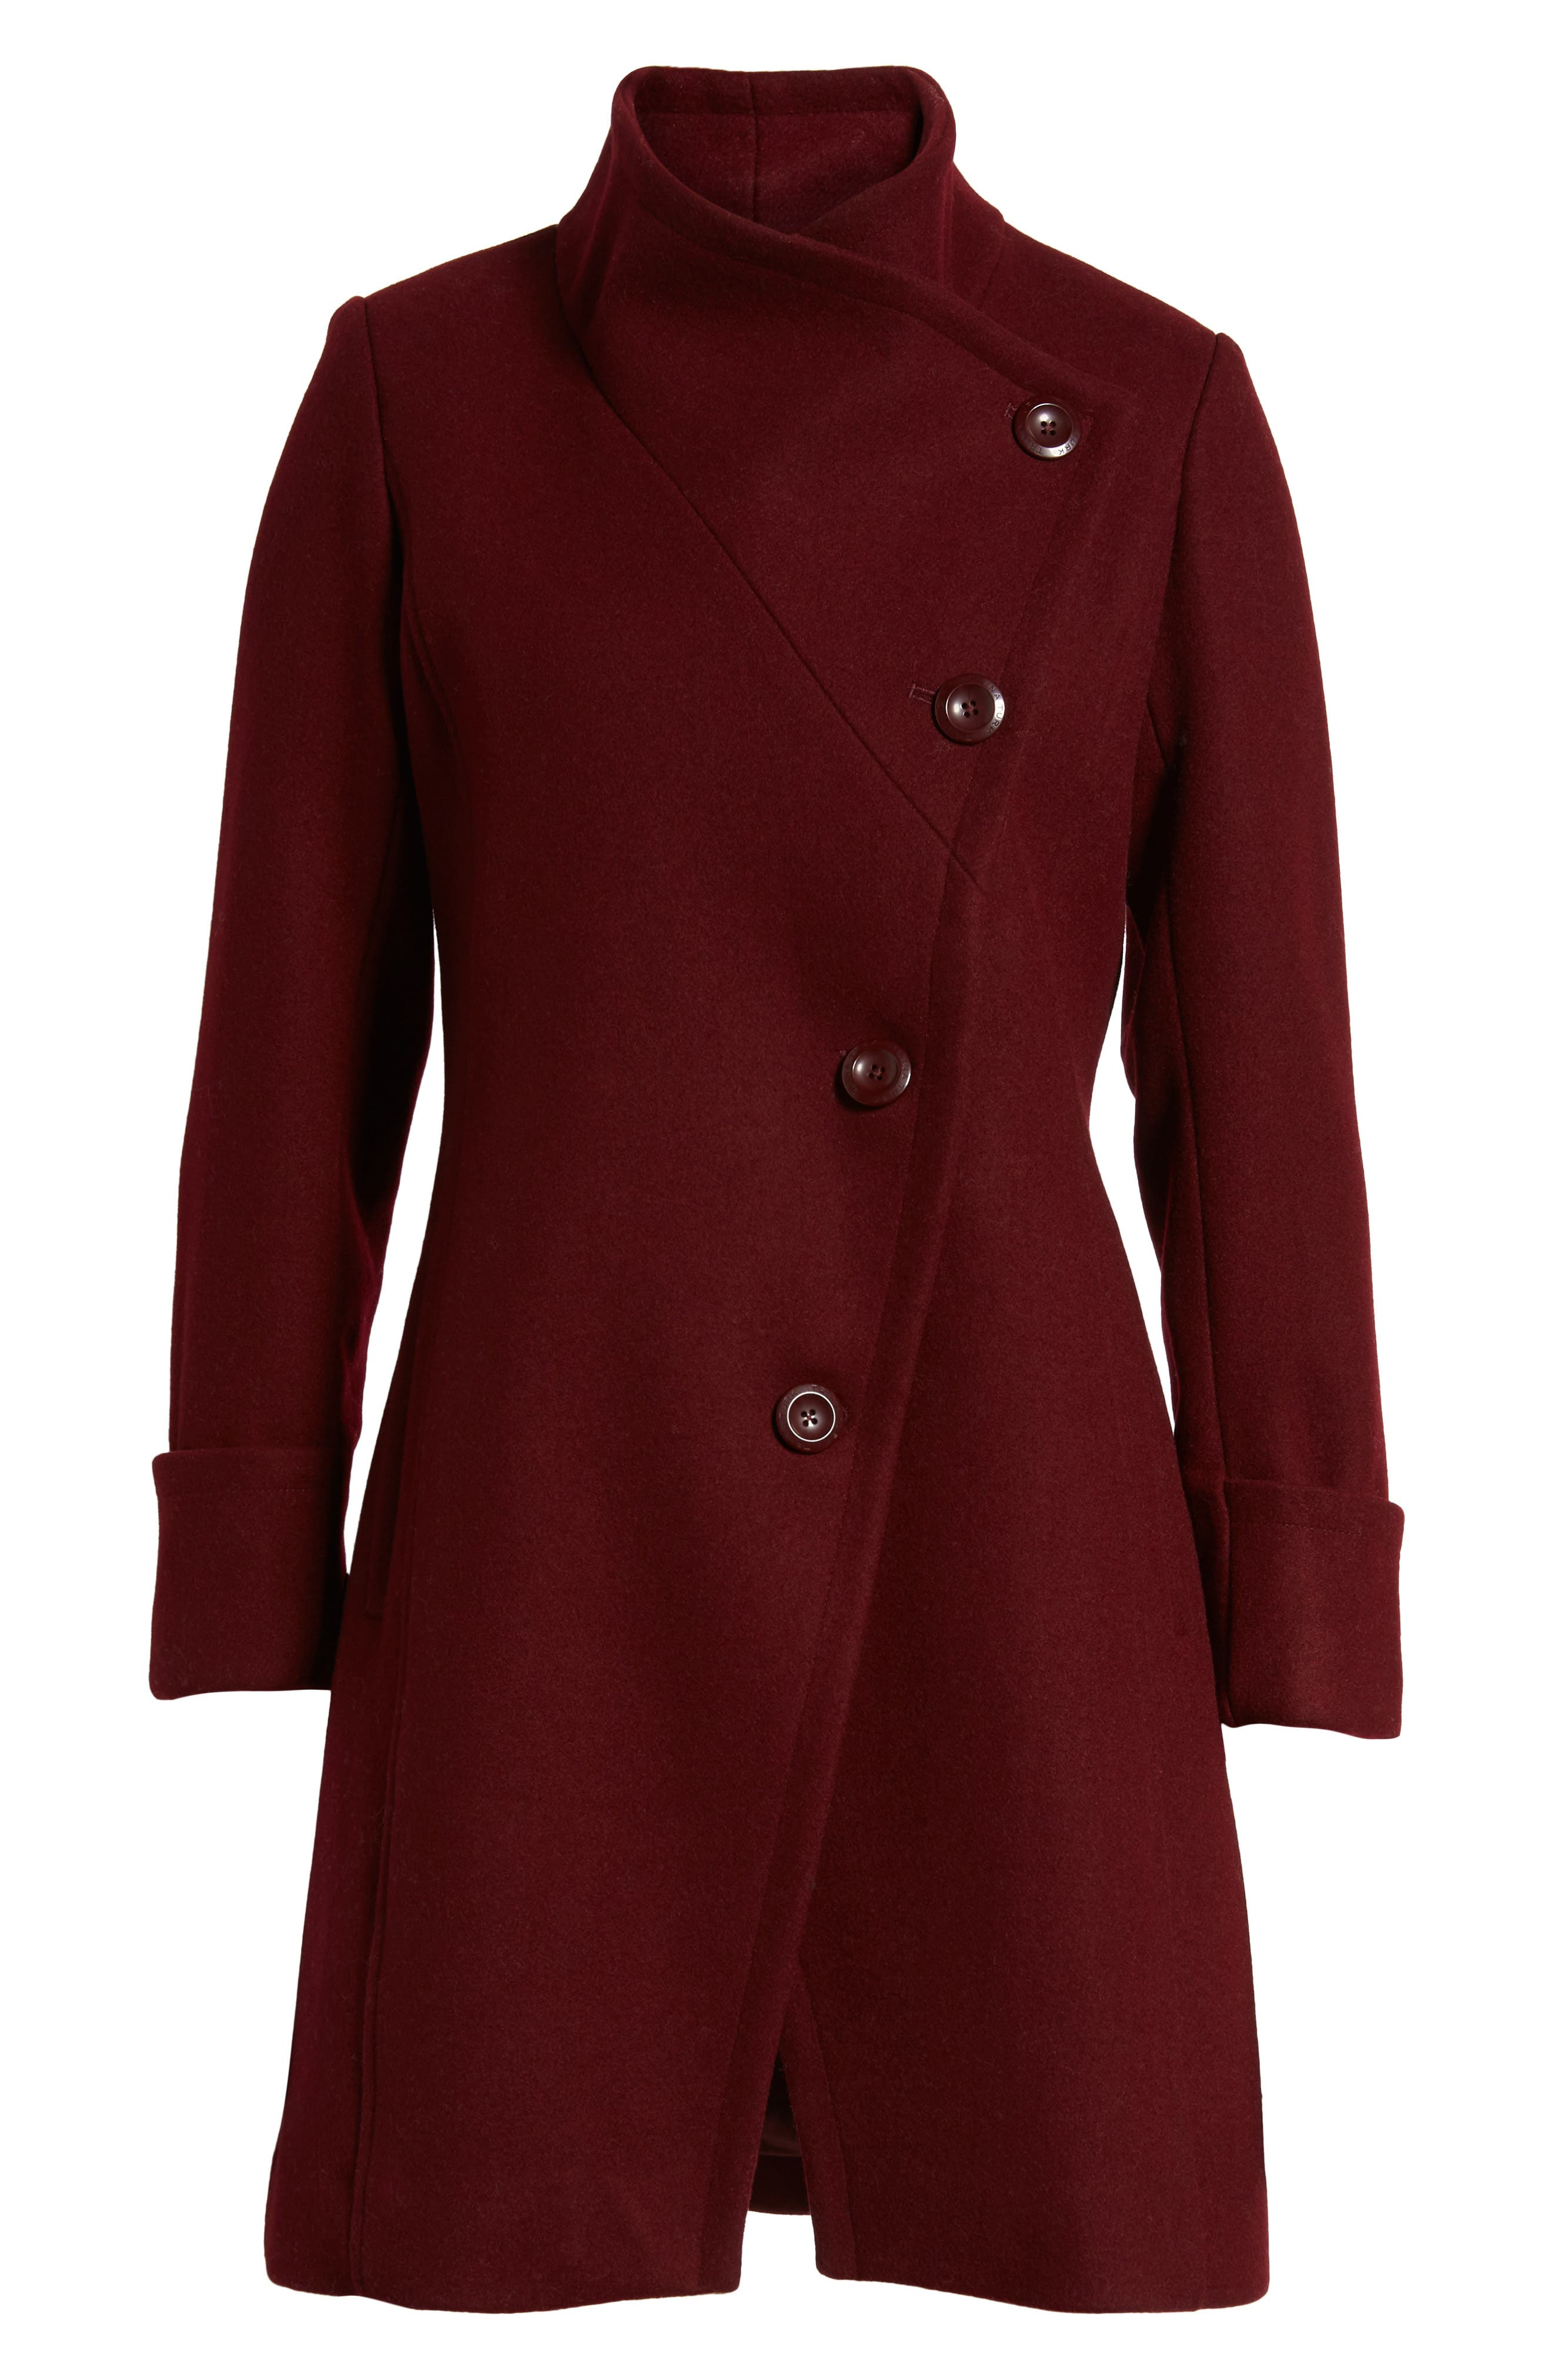 Fiona Double Breasted Coat,                             Main thumbnail 1, color,                             Oxblood